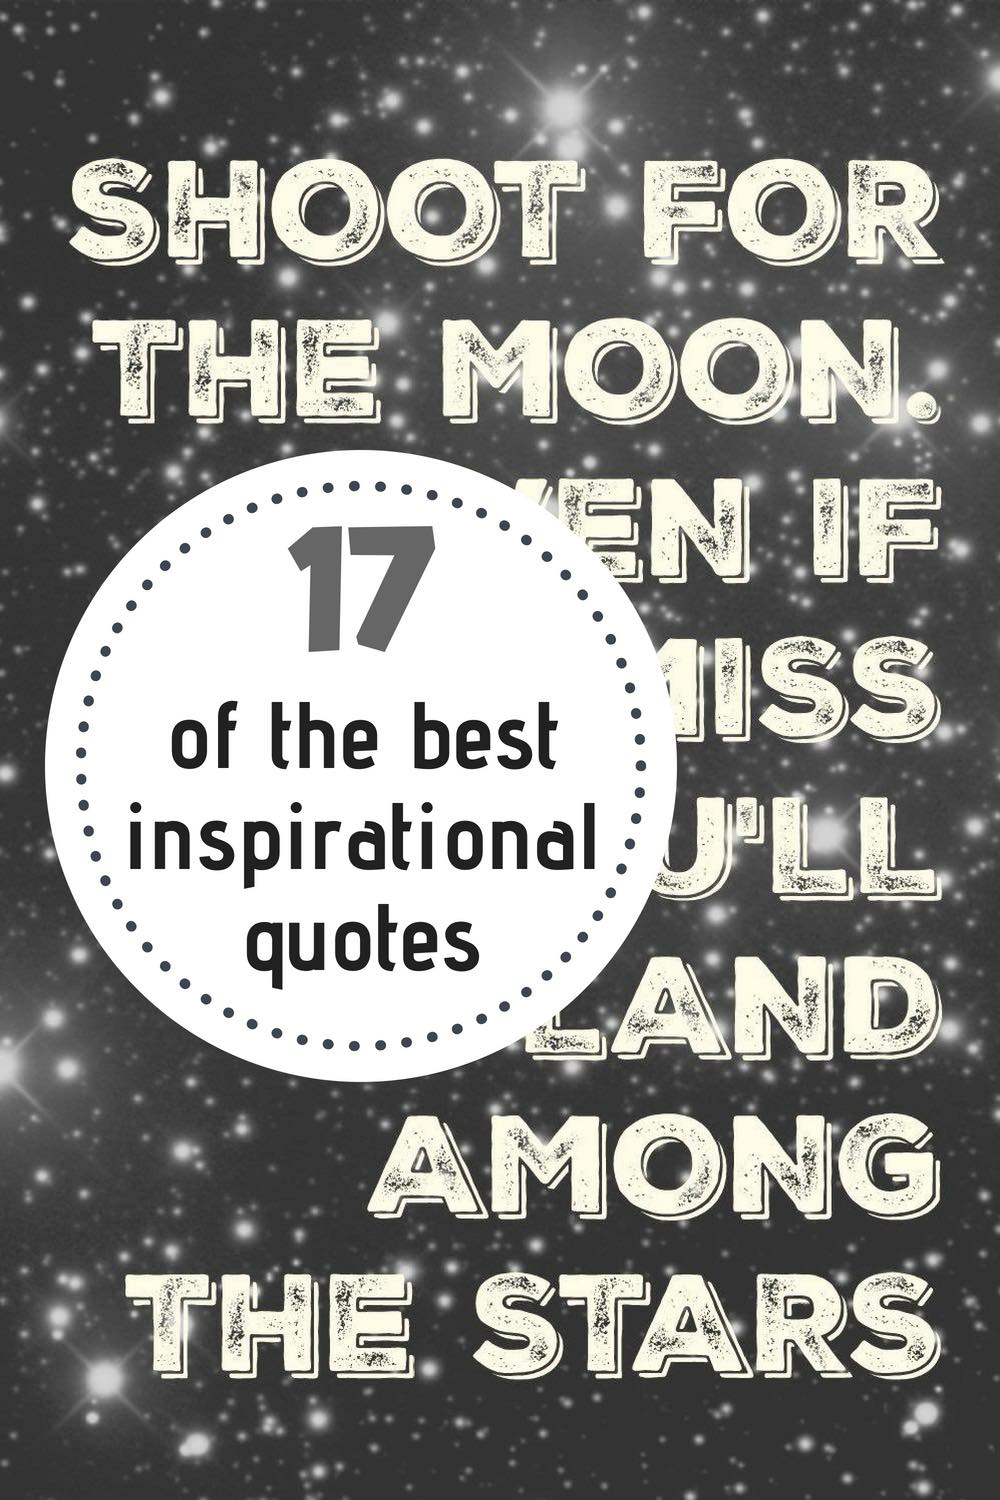 17 Inspirational Quotes to Motivate You to Achieve Your Goals